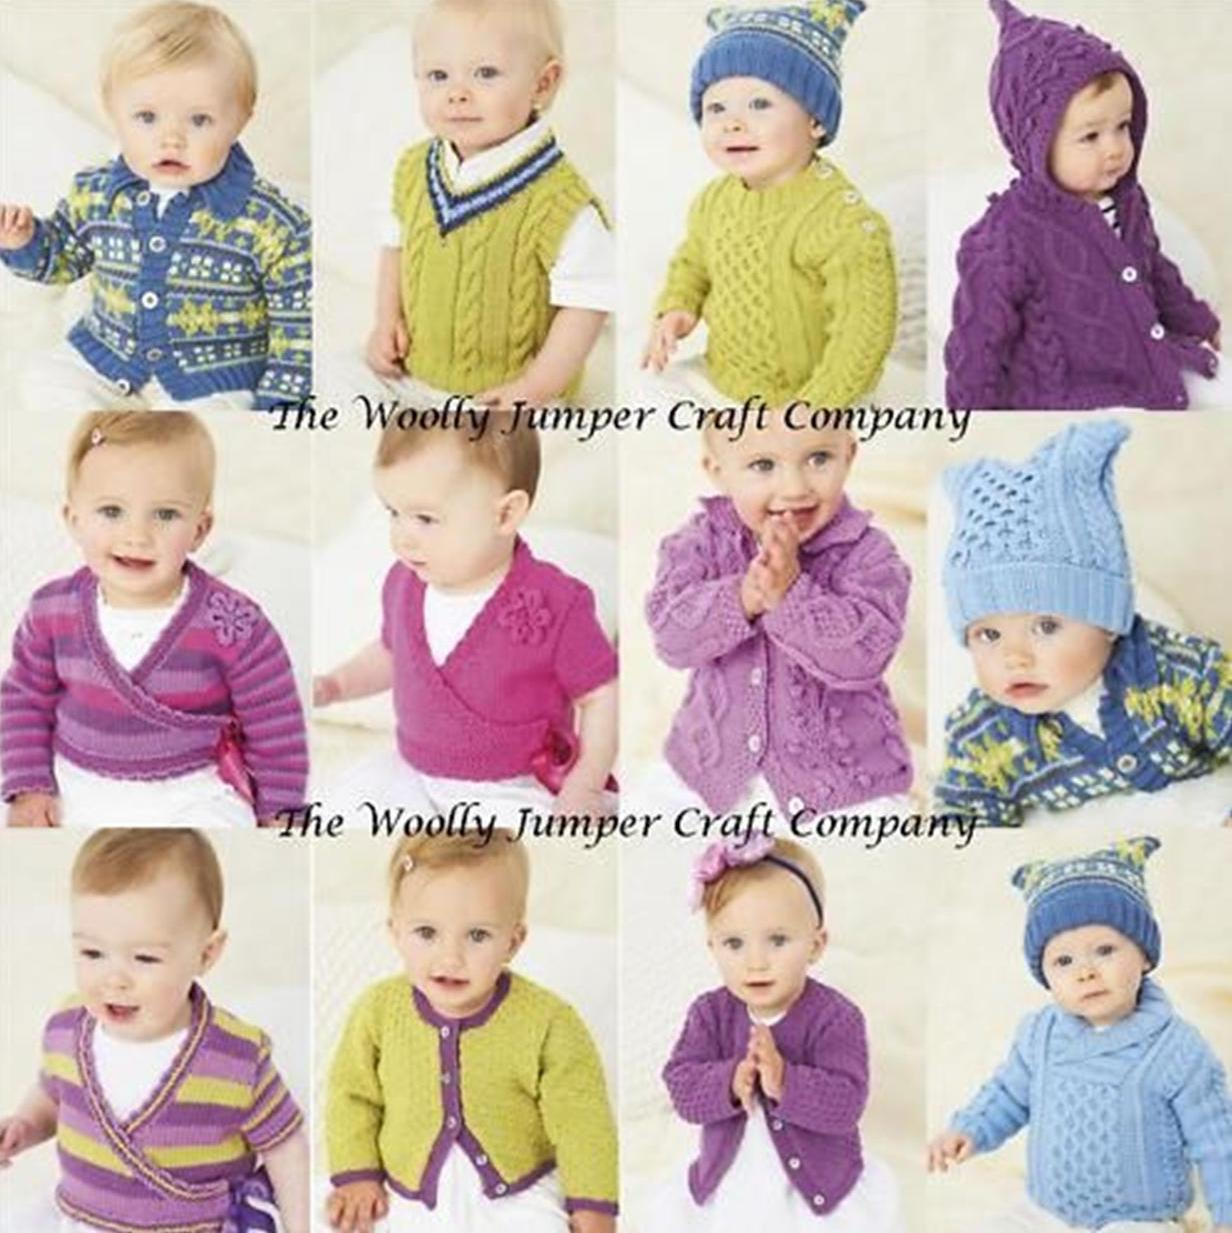 Sublime Knitting Pattern Books Babies : 649 - THE 8TH LITTLE SUBLIME HAND KNIT BOOK KNITTING PATTERN BOOKLET - TO FIT...